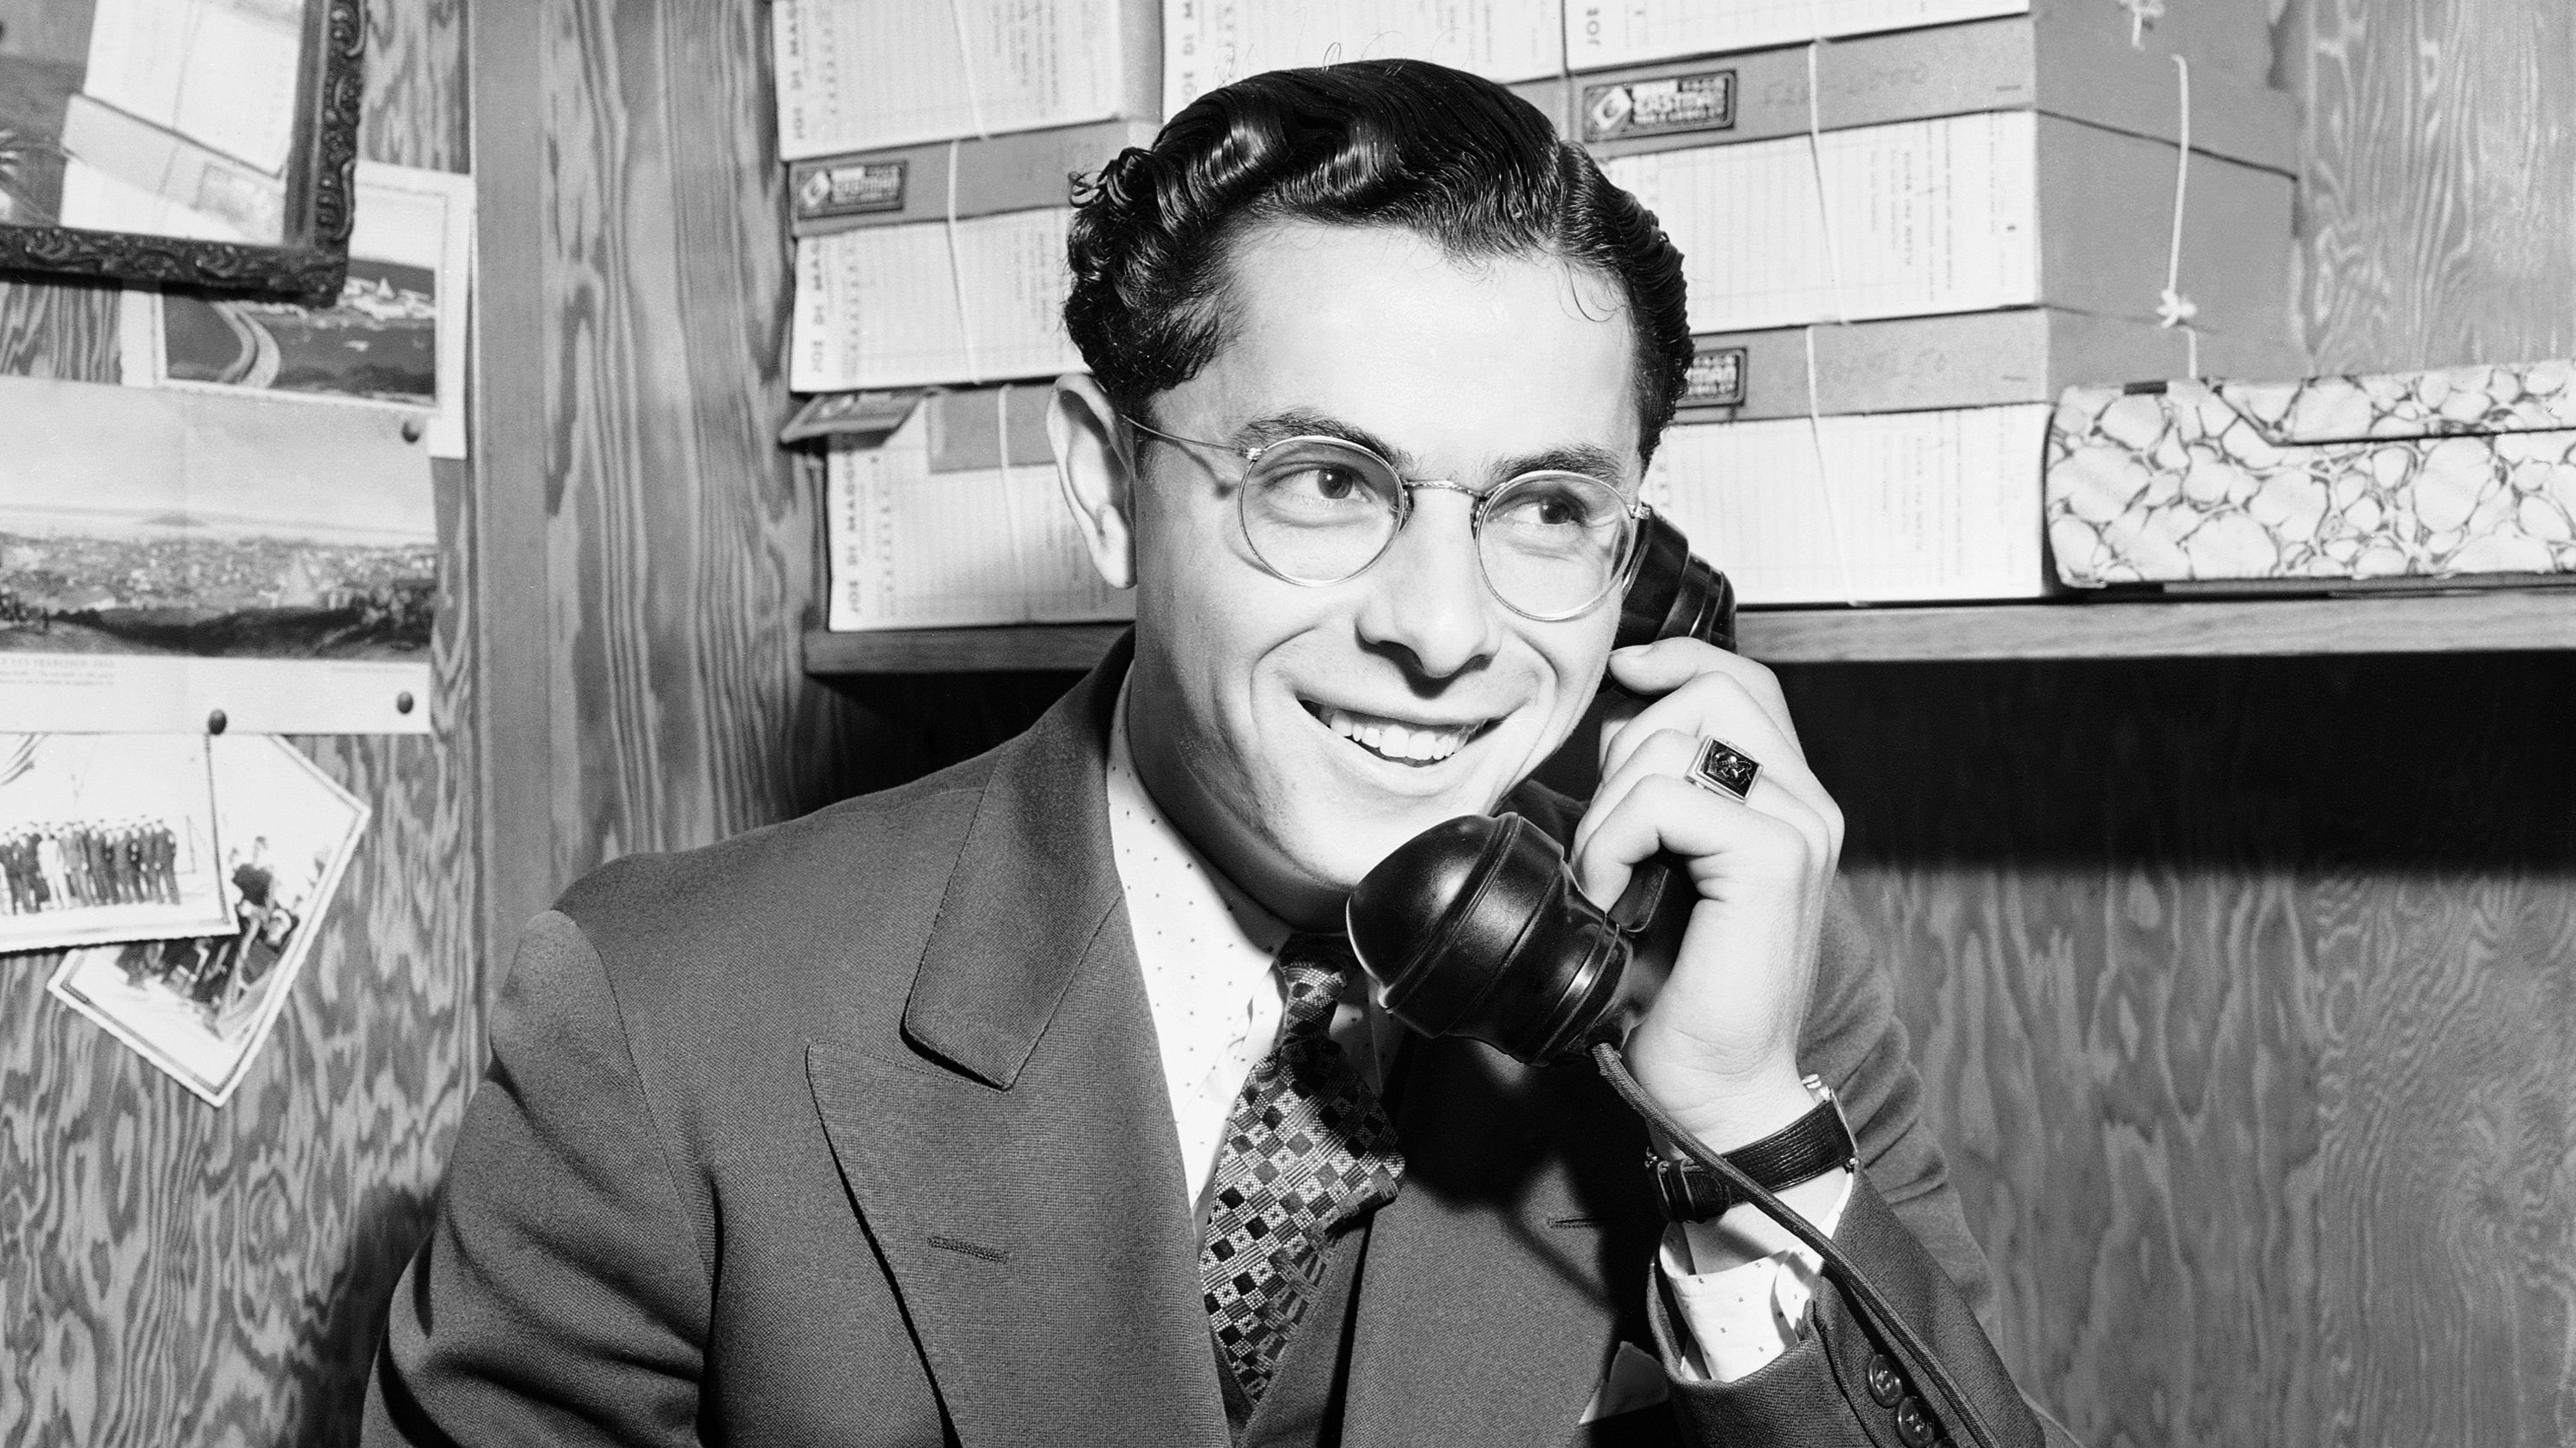 Dominic DiMaggio, youngest brother of the DiMaggio baseball clan, answers one of numerous phone calls afther the news of his sale to the Boston Red Sox got around, Nov. 12, 1939.  The 21-year-old was voted the Most Valuable Player in the Coast League last season. (AP Photo/Joe Rosenthal)